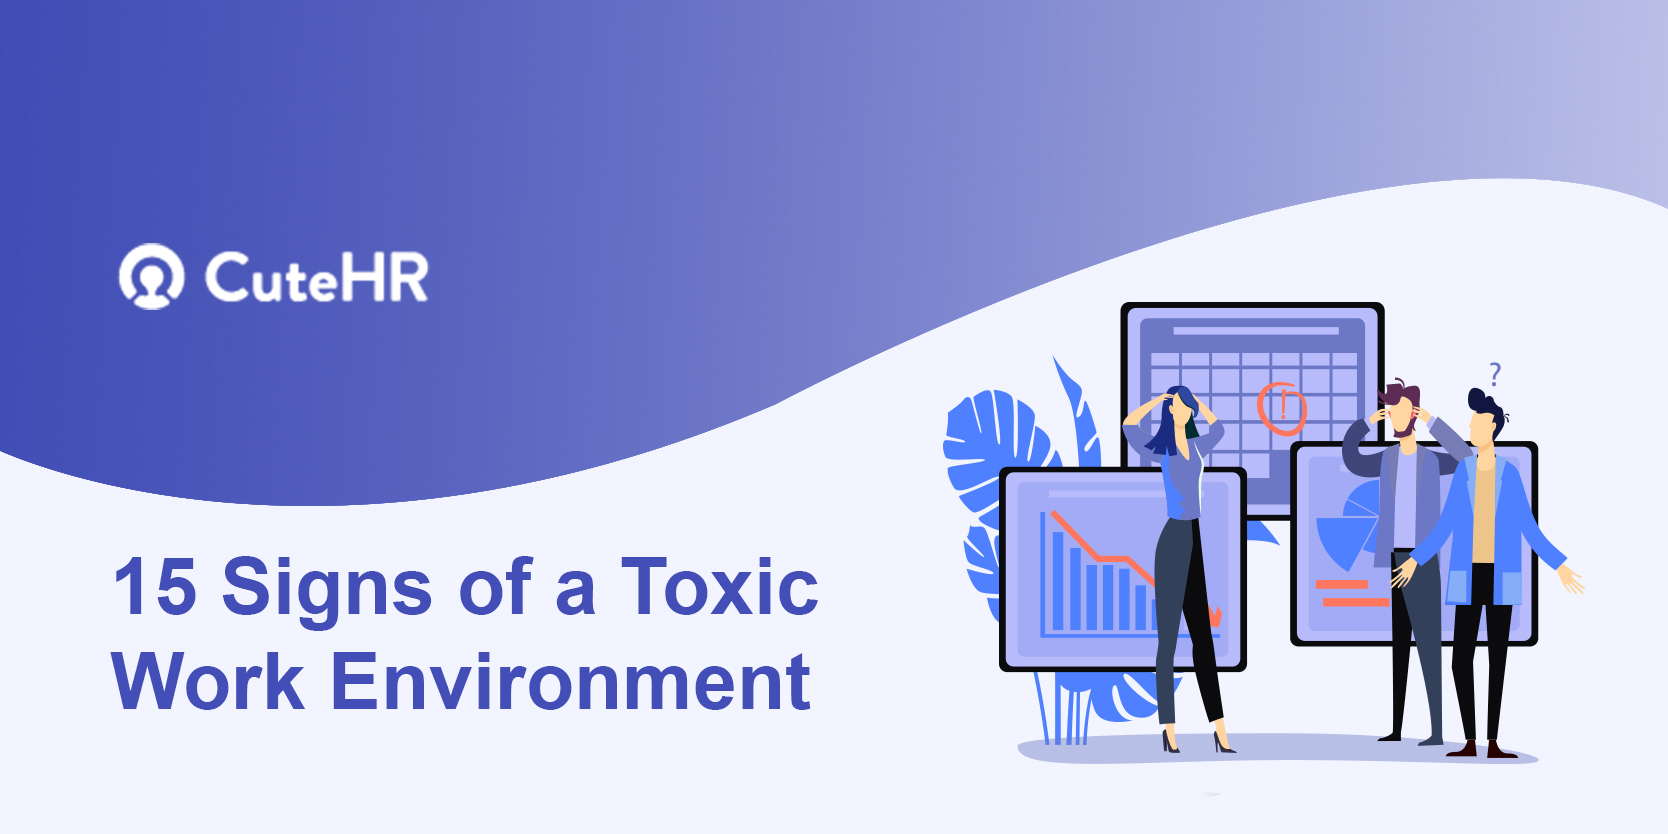 15 Signs of a Toxic Work Environment